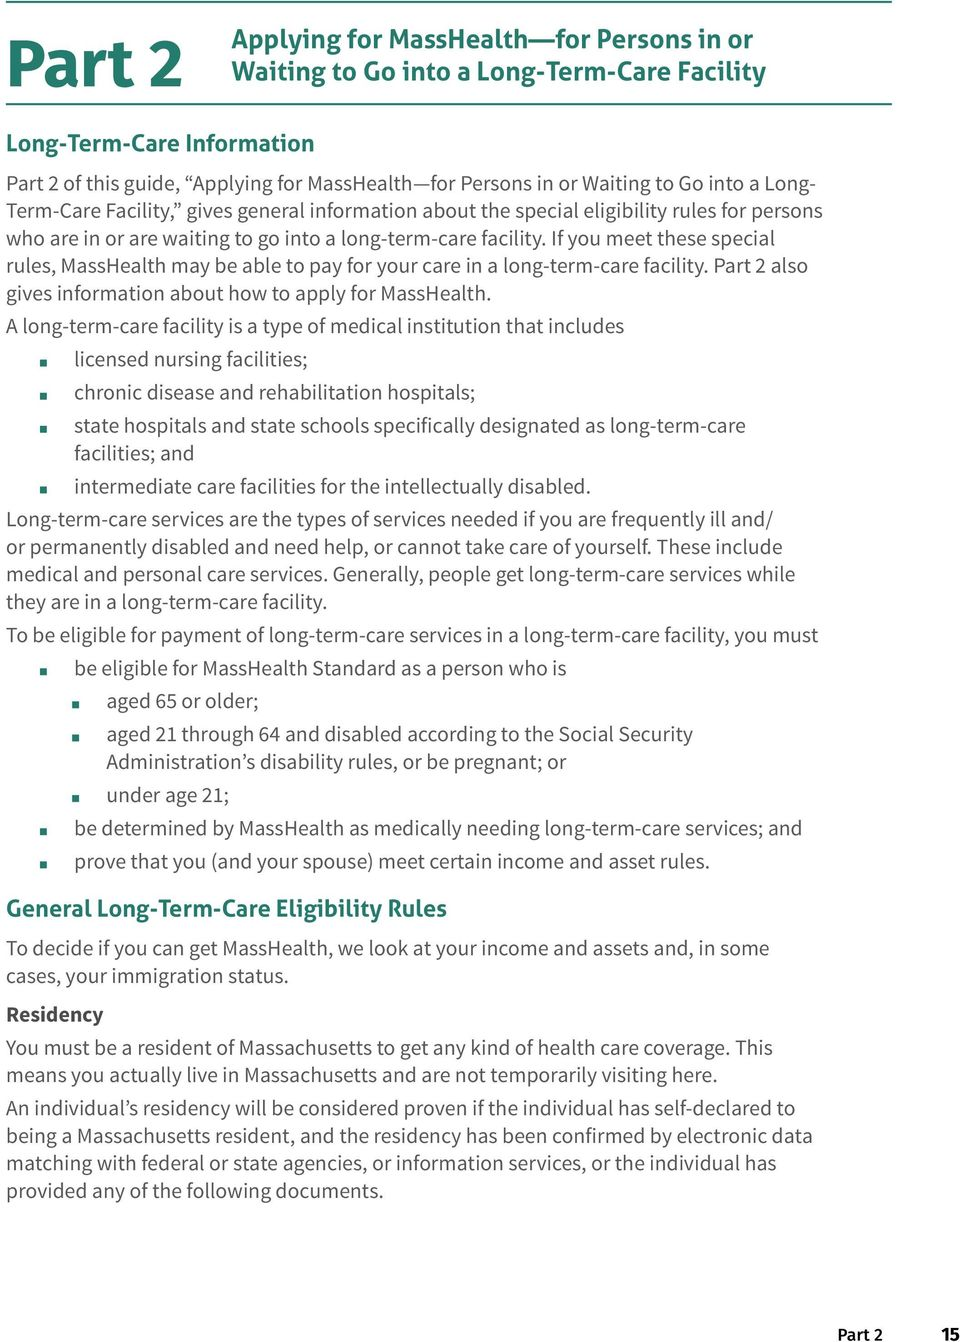 If you meet these special rules, MassHealth may be able to pay for your care in a long-term-care facility. Part 2 also gives information about how to apply for MassHealth.